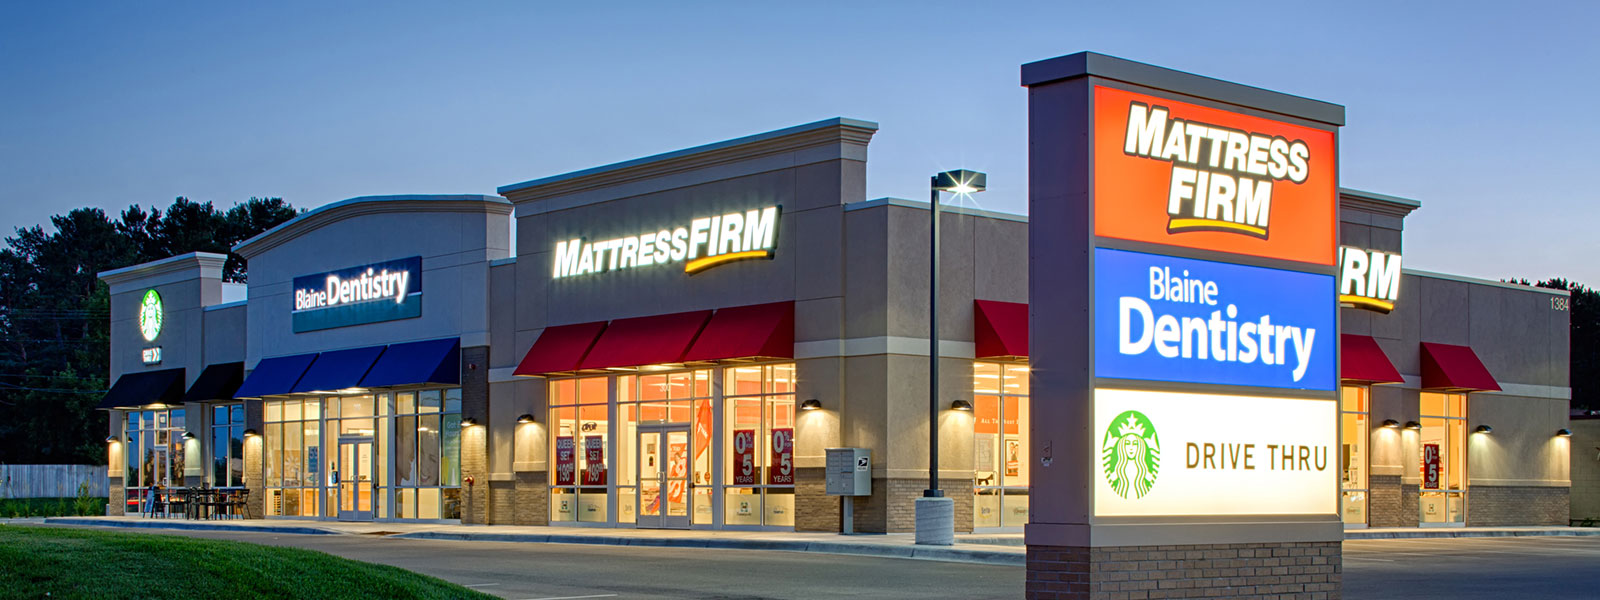 mattress firm building.  Firm Shingobee Builders U003e Projects Mattress Firm  MultiTenant Retail Centers In Building A